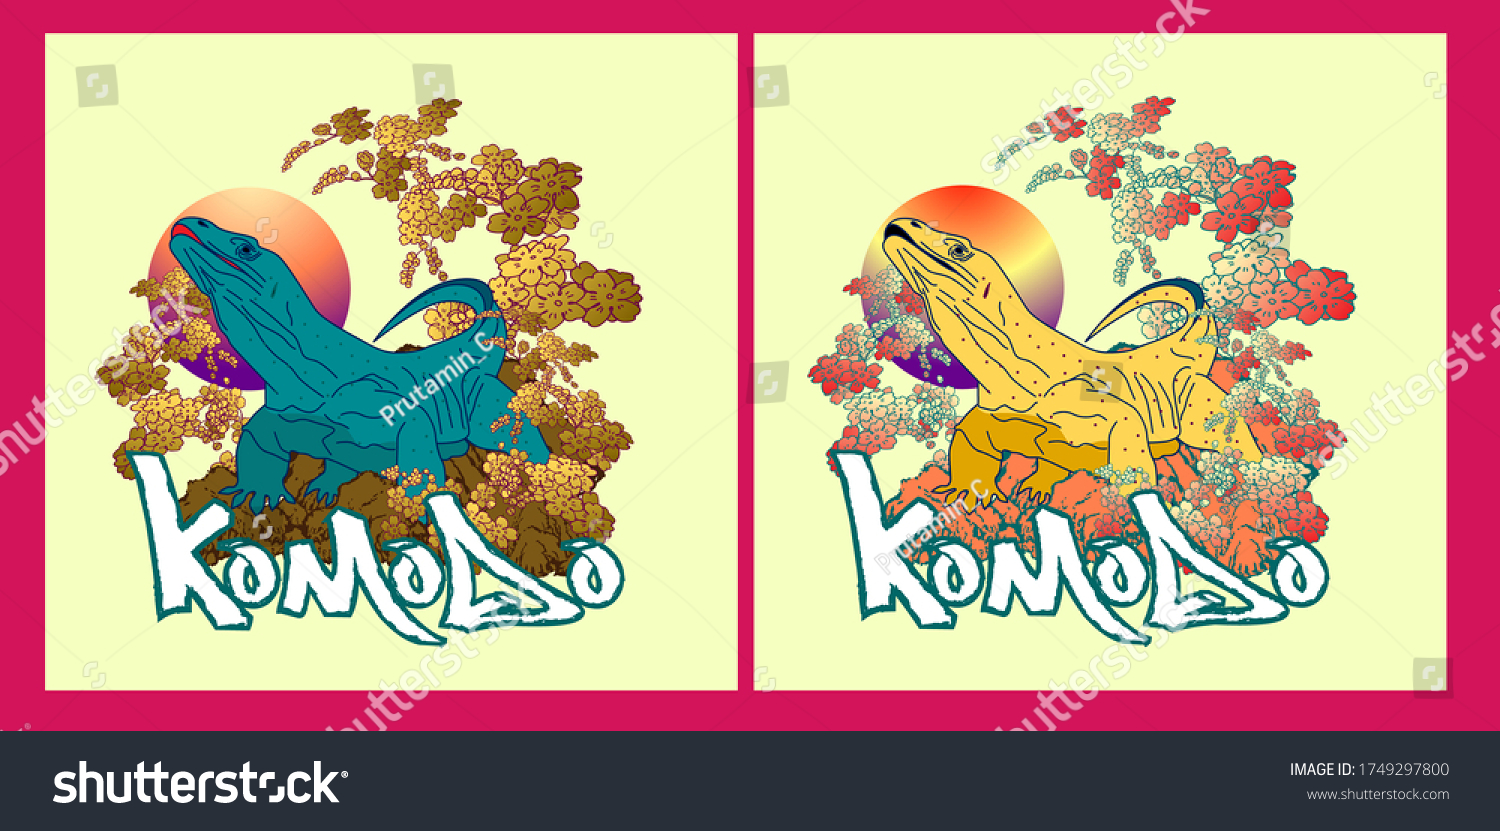 komodo or indonesia's dragon illustration design for sukajan is mean japan traditional cloth or t-shirt with digital hand drawn Embroidery Men T-shirts Summer Casual Short Sleeve Hip Hop T Shirt